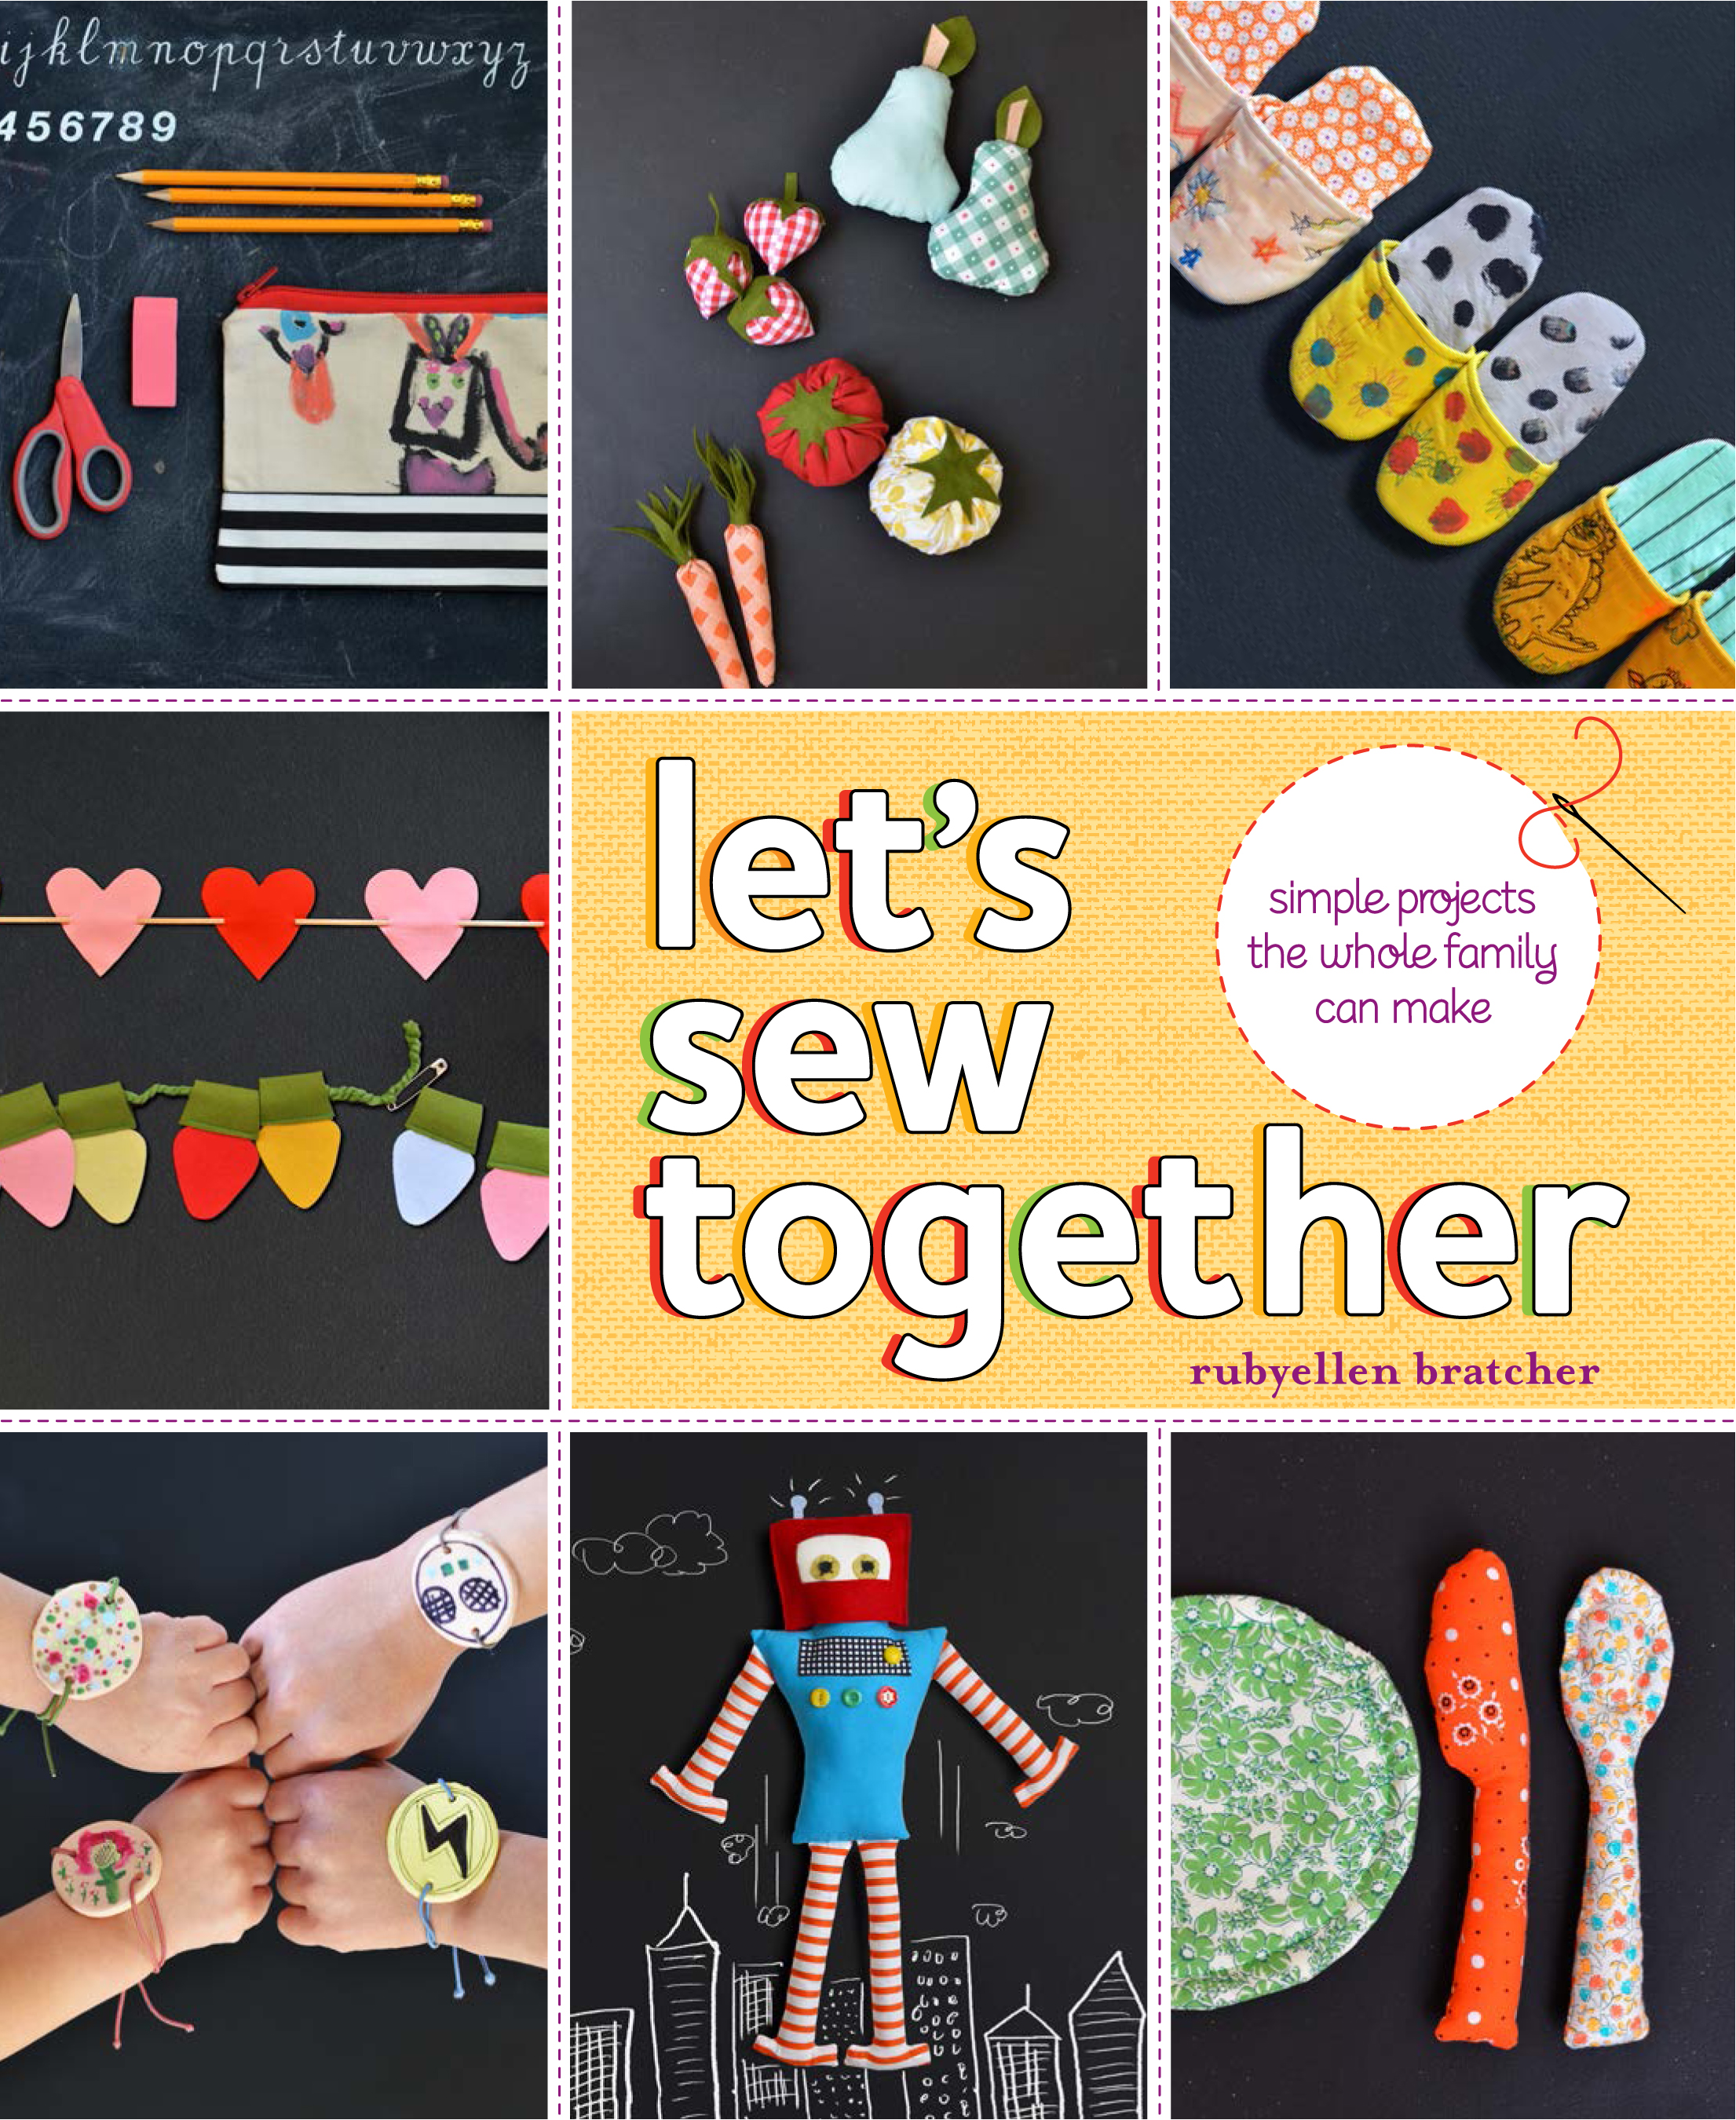 LET'S SEW TOGETHER PUBLISHED MAY 2014 WITH PENGUIN RANDOM HOUSE